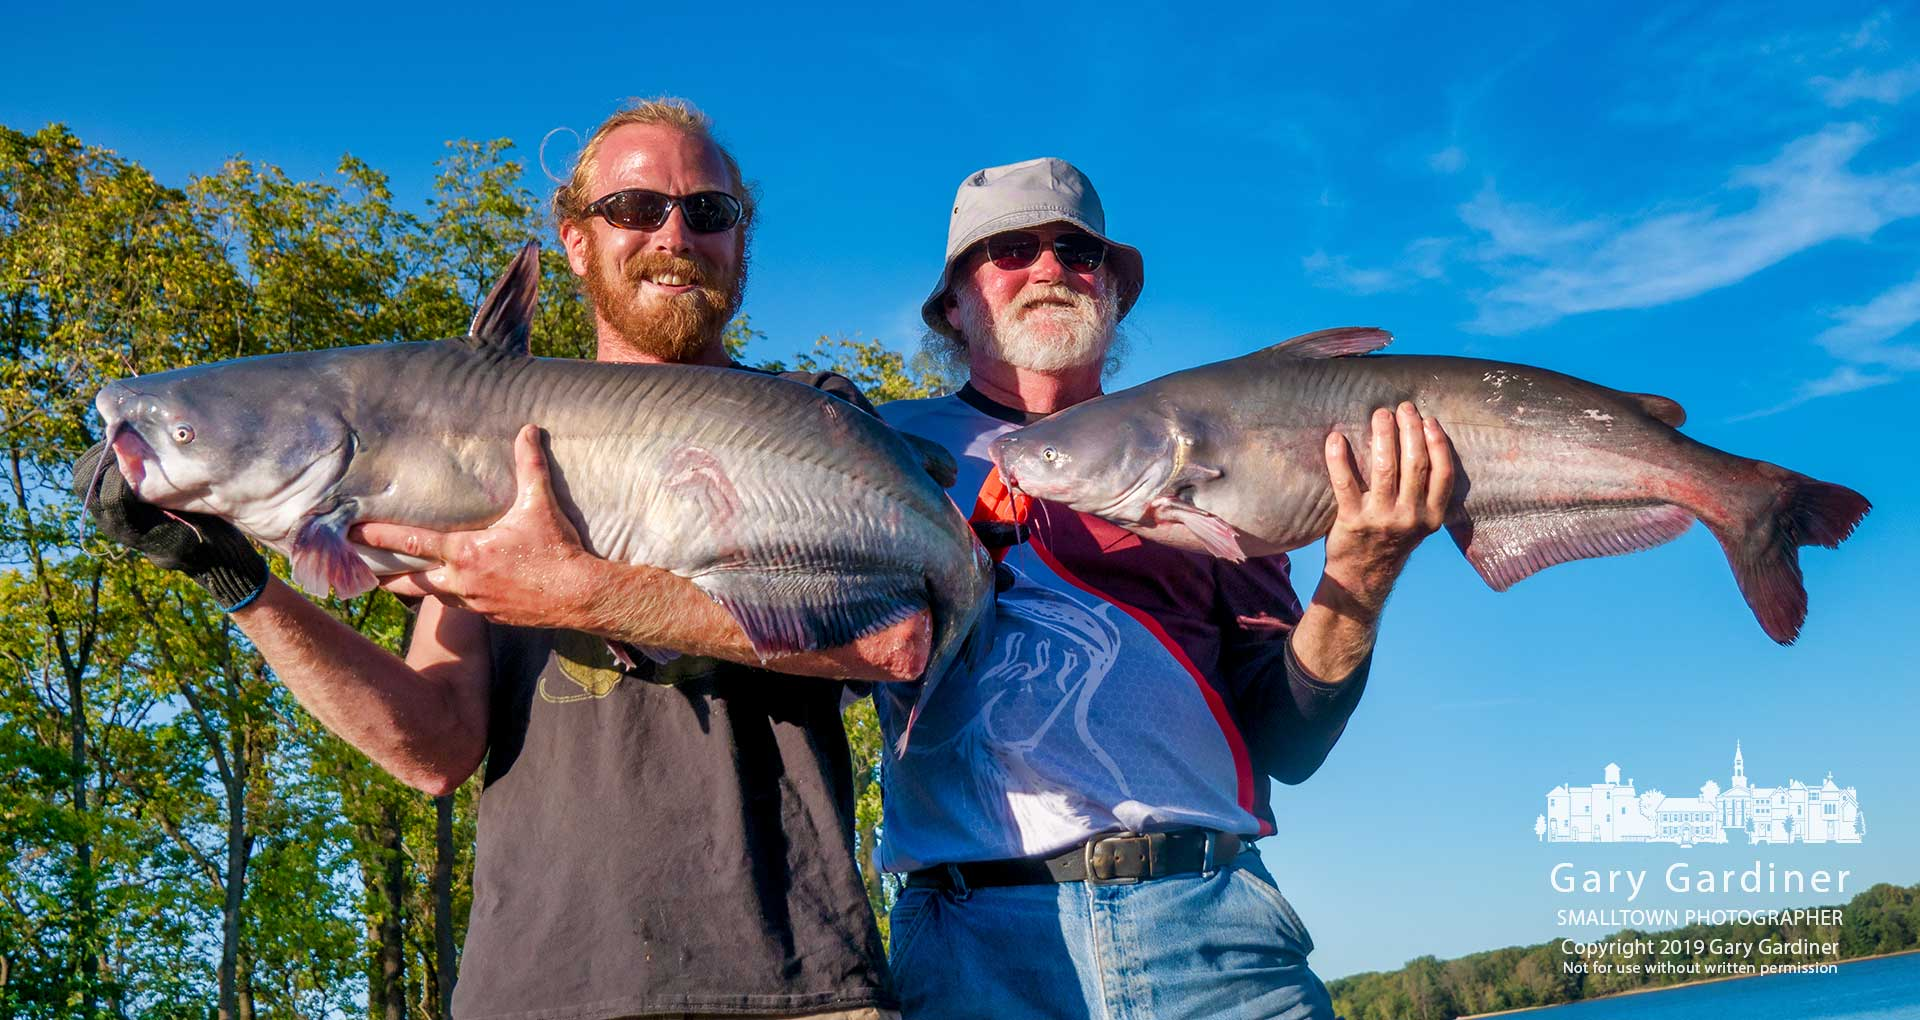 A pair of fishermen display their catch after weigh-in at the Flathead Blue catfish tournament Saturday at Hoover Reservoir. My Final Photo for Sept. 14, 2019.